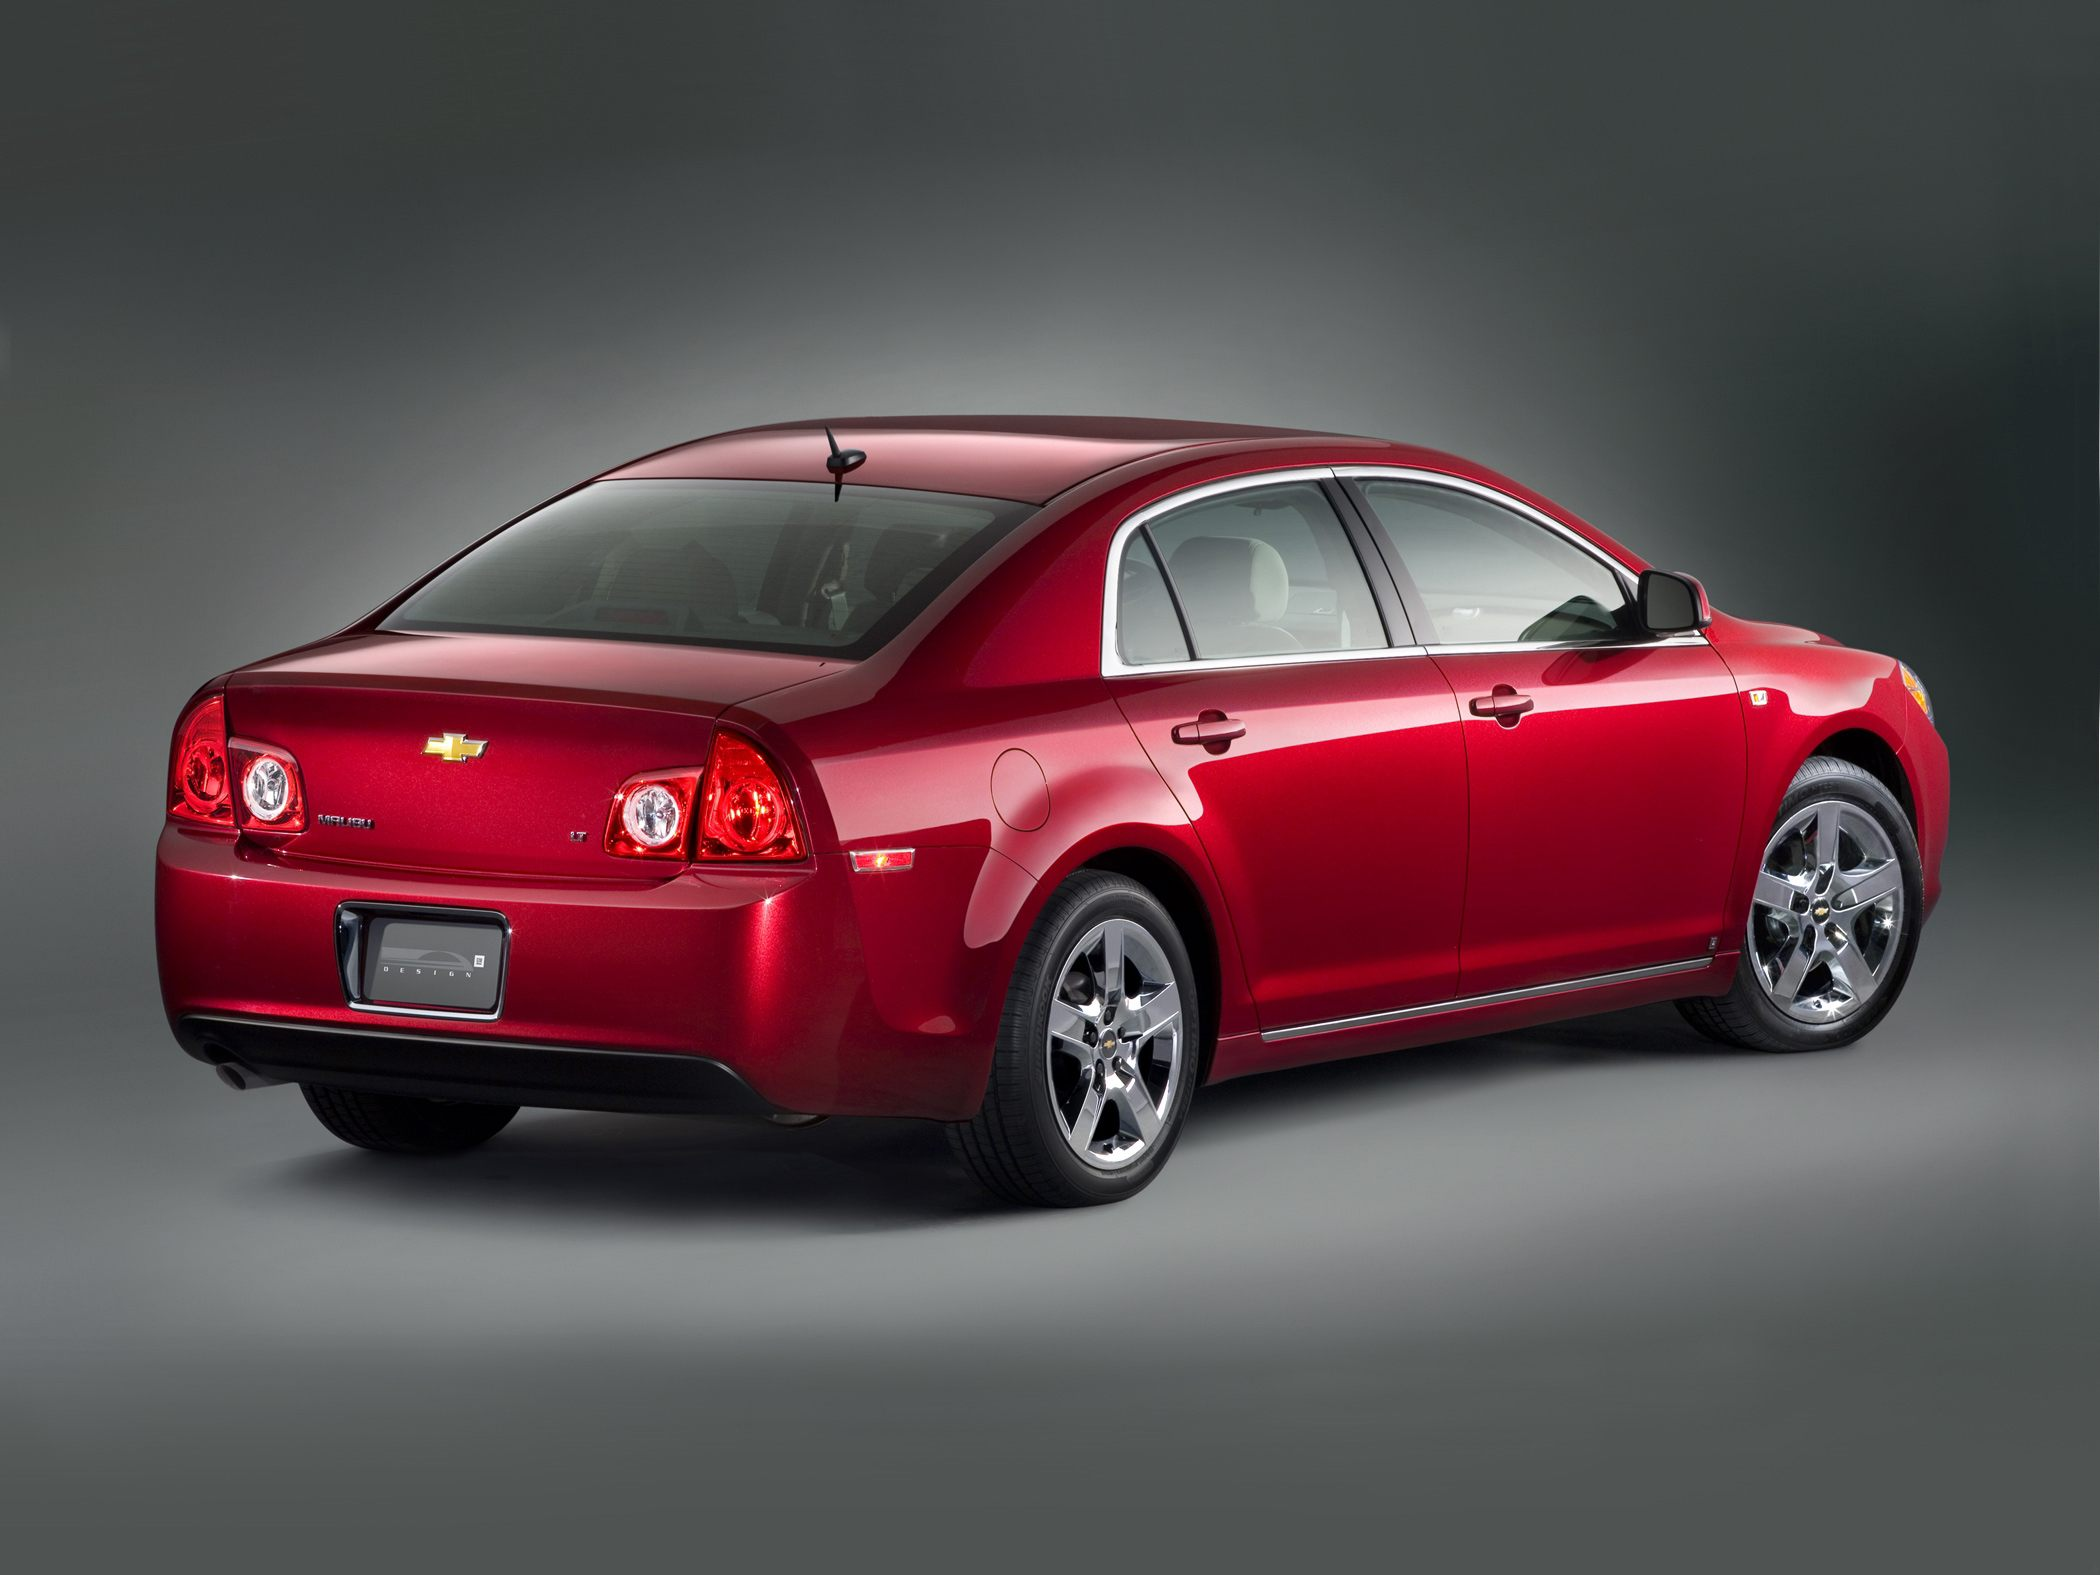 2012 Chevrolet Malibu Information And Photos Zombiedrive 2011 Enclave Wiring Diagram 19